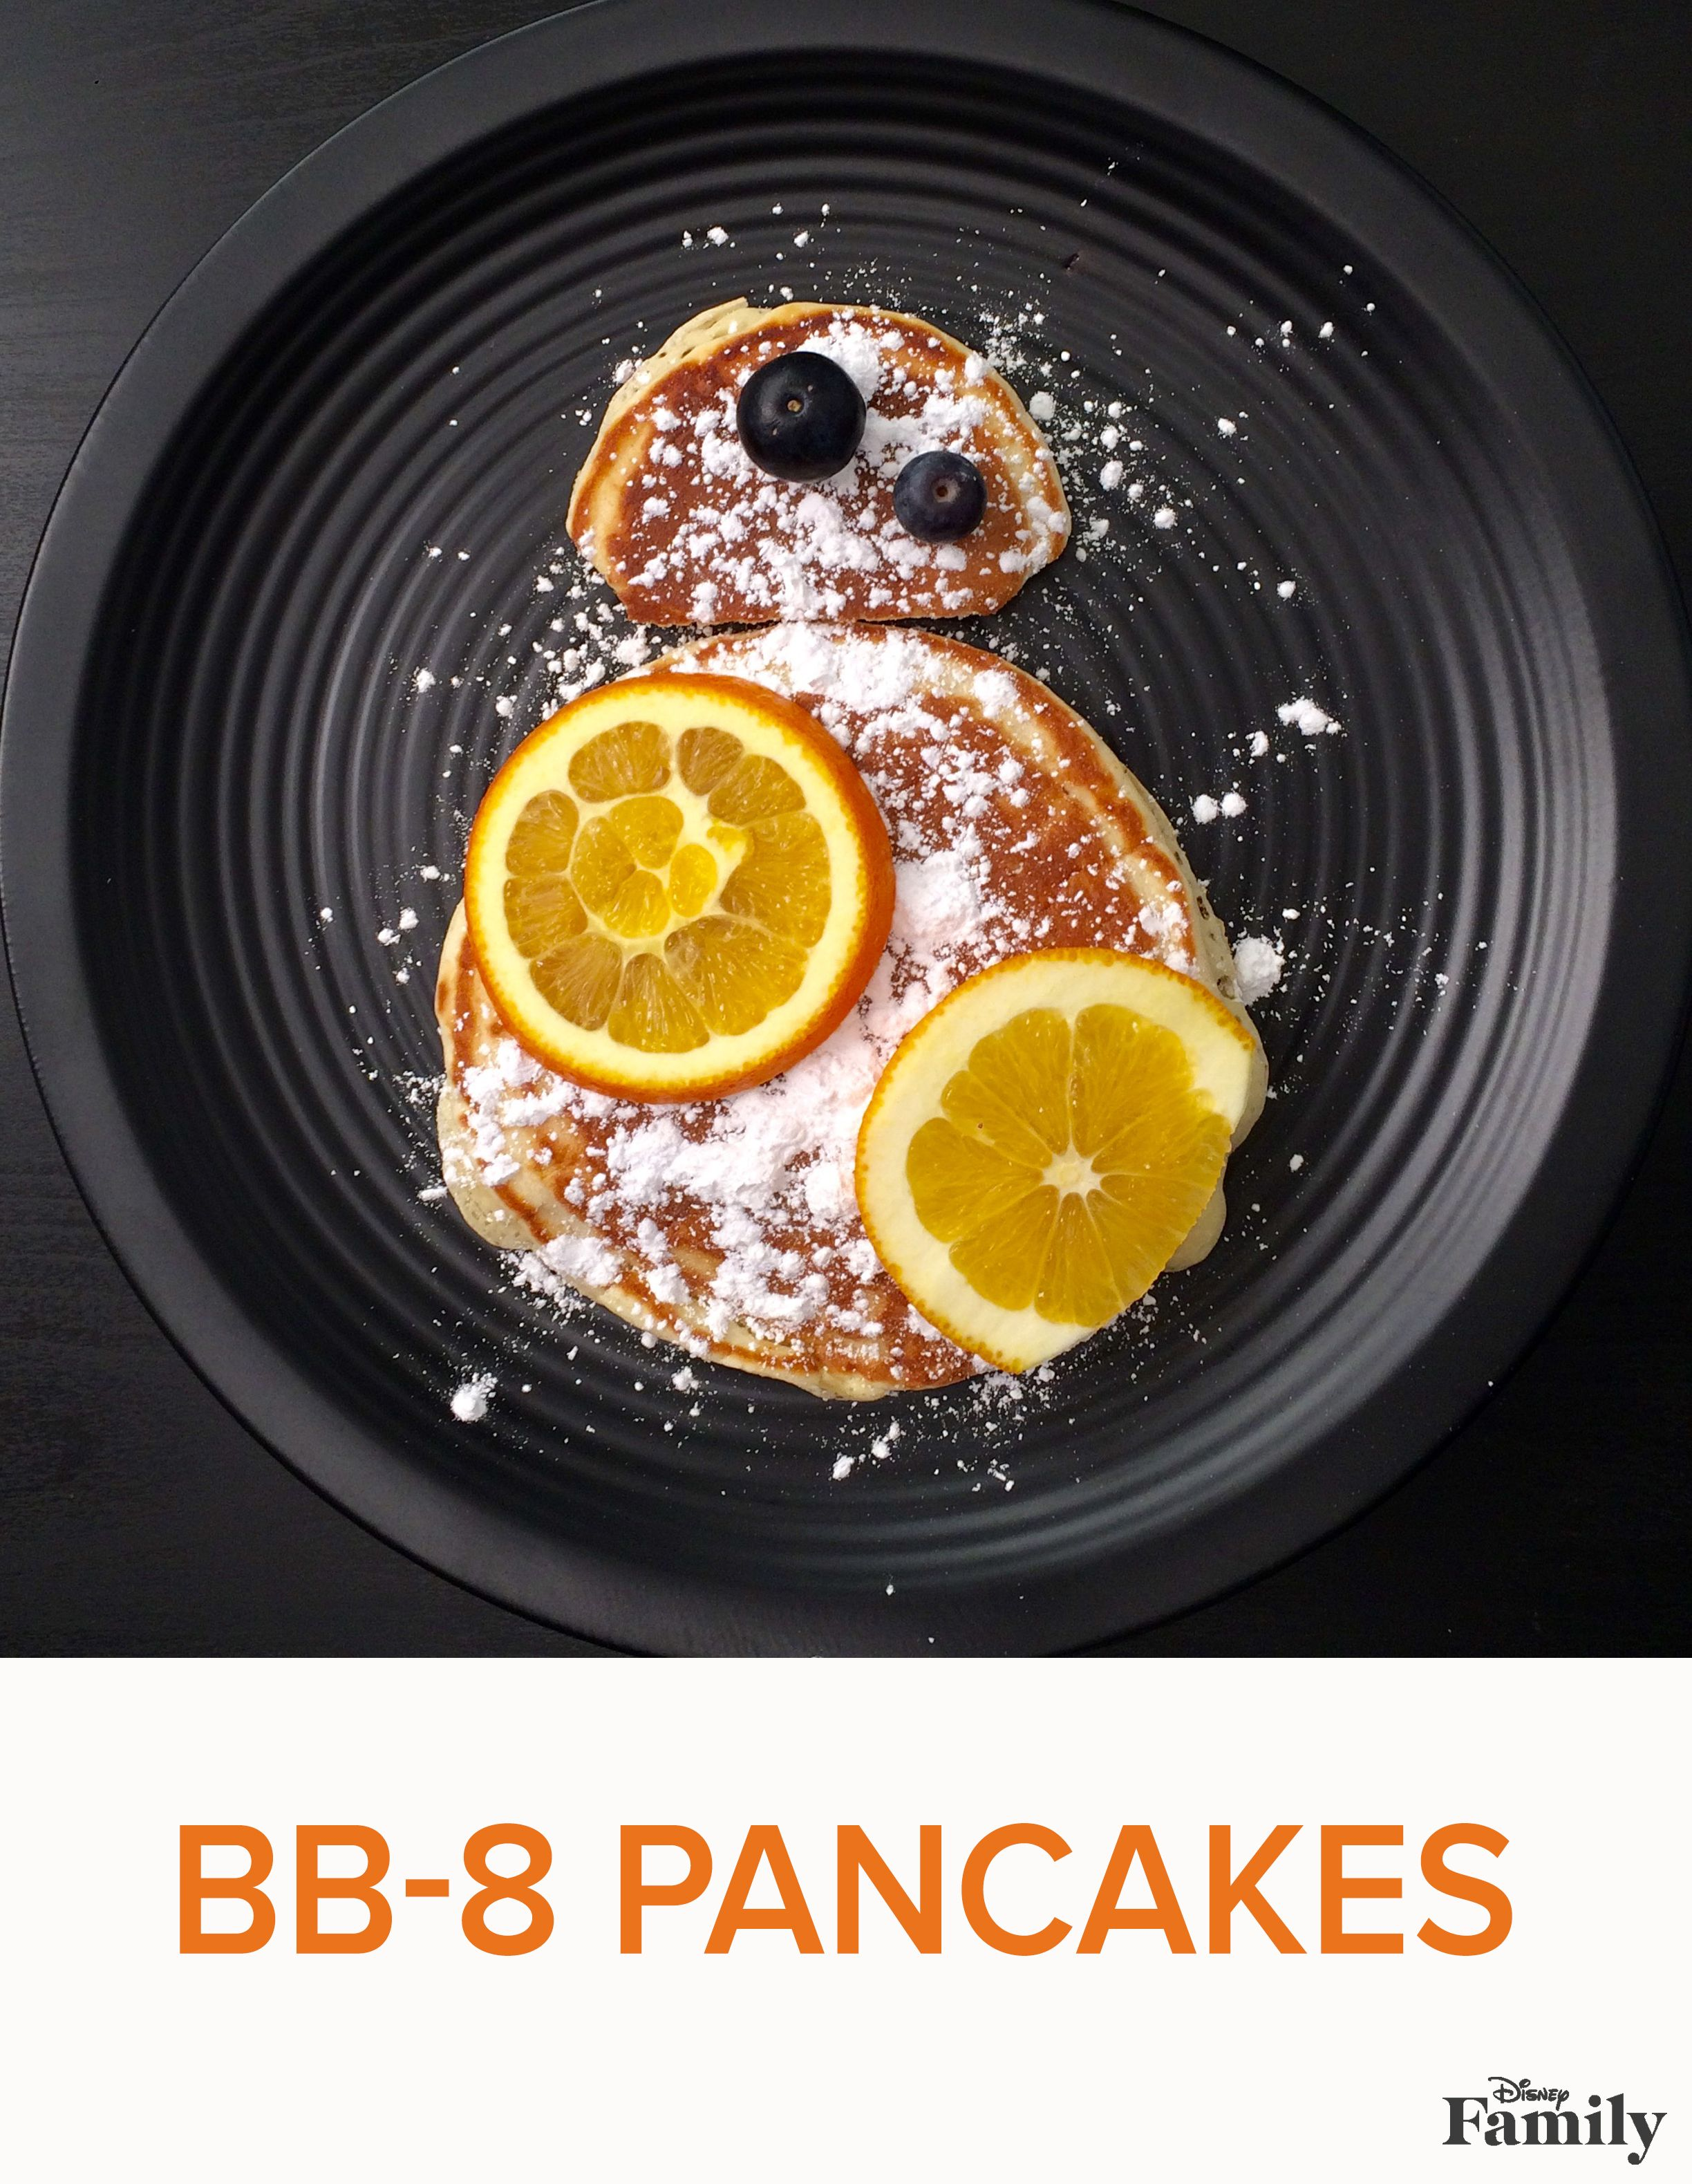 """Roll out of bed and celebrate """"Star Wars: The Force Awakens"""" with an epic breakfast adventure featuring our BB-8 pancake recipe! Grab some powdered sugar as well as some fresh fruit, and follow the recipe at Disney Family to transform regular pancakes into a Star Wars breakfast from another galaxy."""